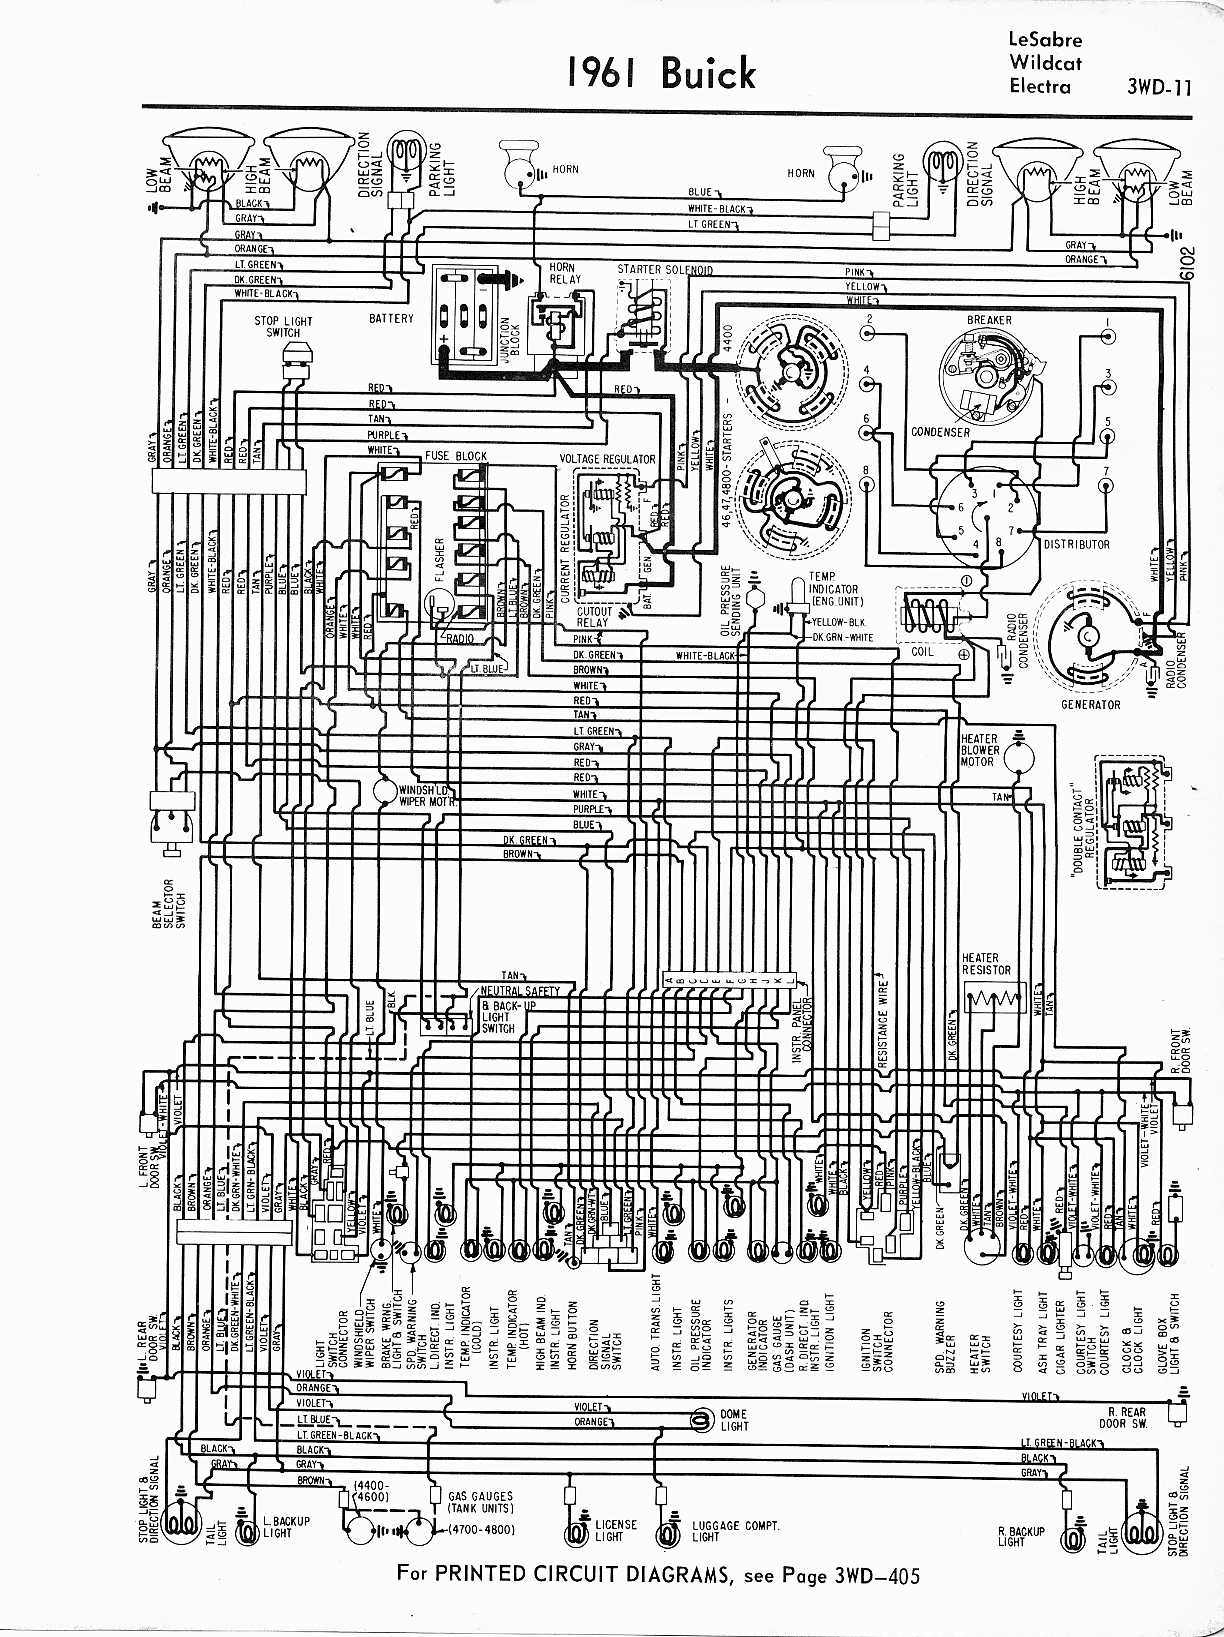 hight resolution of 1996 buick lesabre wiring diagram schematic wiring diagrams buick color codes 1960 buick lesabre wiring diagram